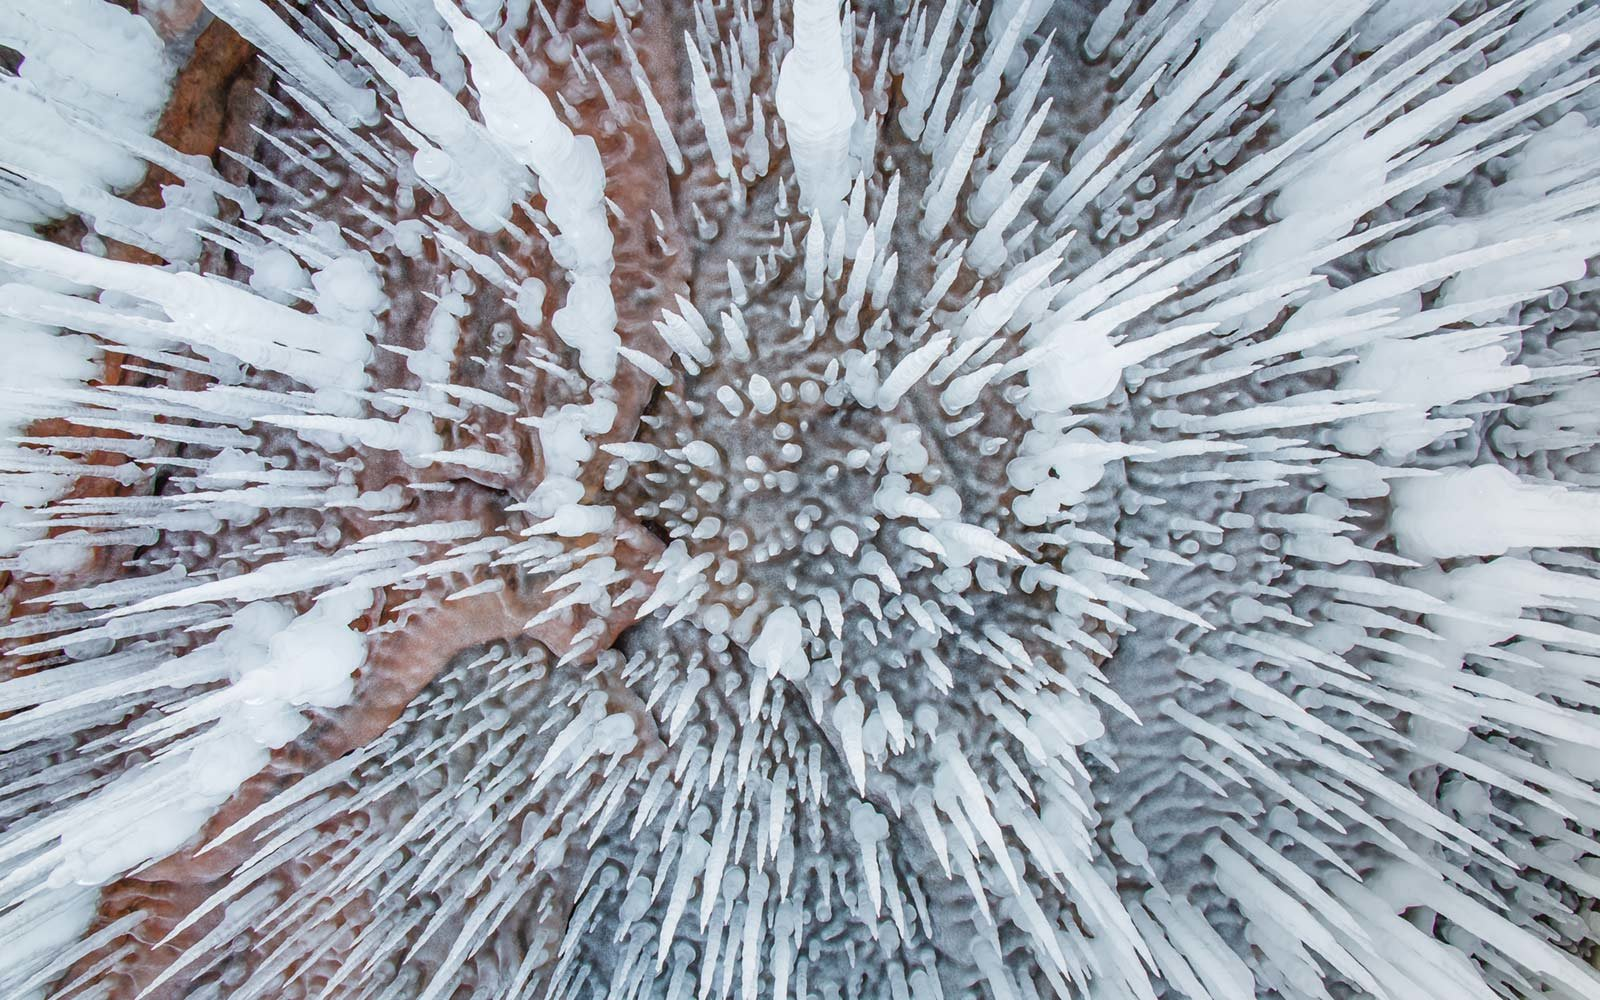 Ceiling Ice Cave, Apostle Island Ice Caves, Wisconsin